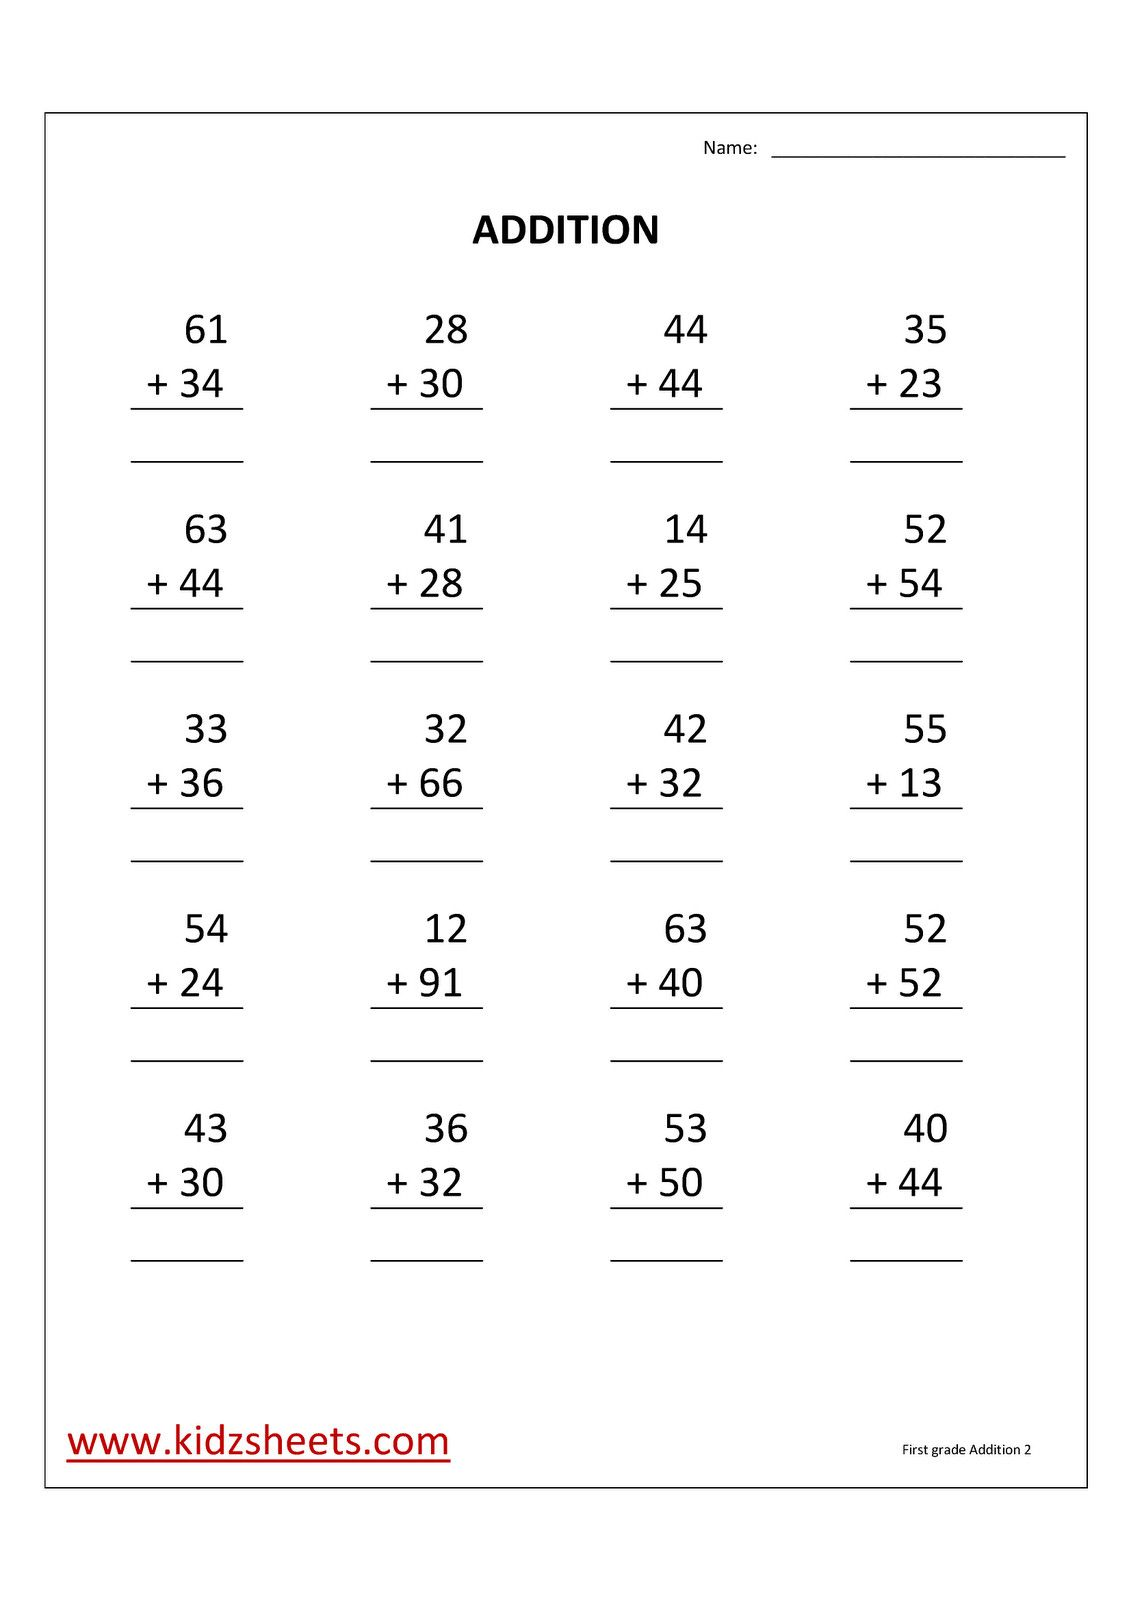 7 Free Addition Worksheets for Math Practice   2nd grade math worksheets [ 1600 x 1131 Pixel ]